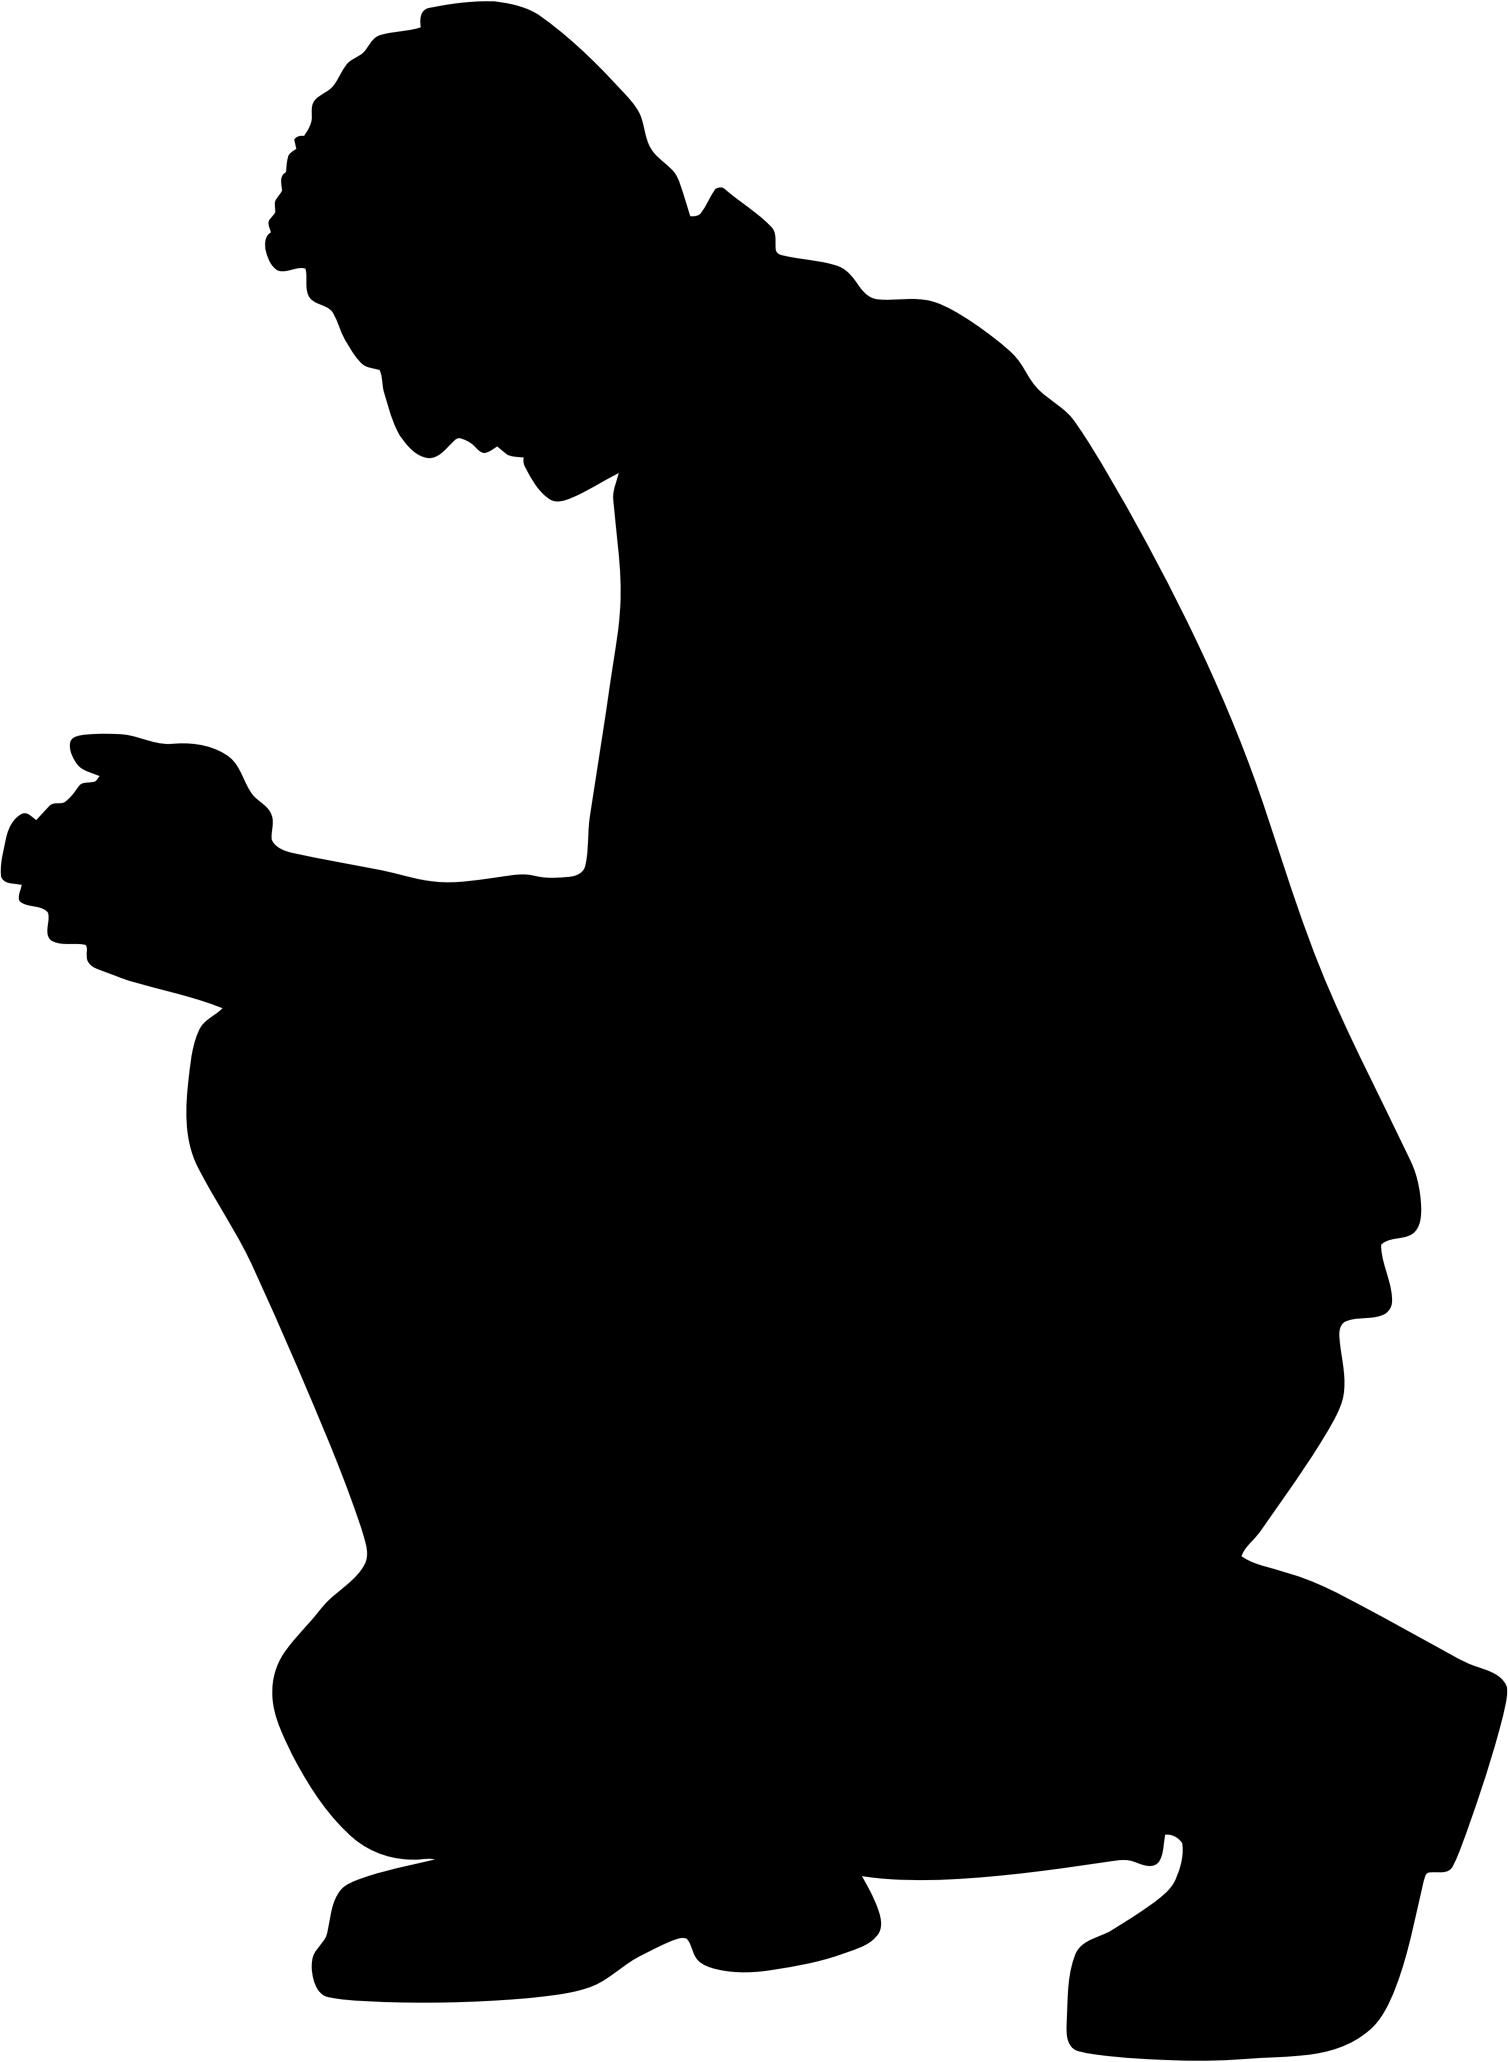 1508x2062 Kneeling Praying Man Silhouette Icons Png